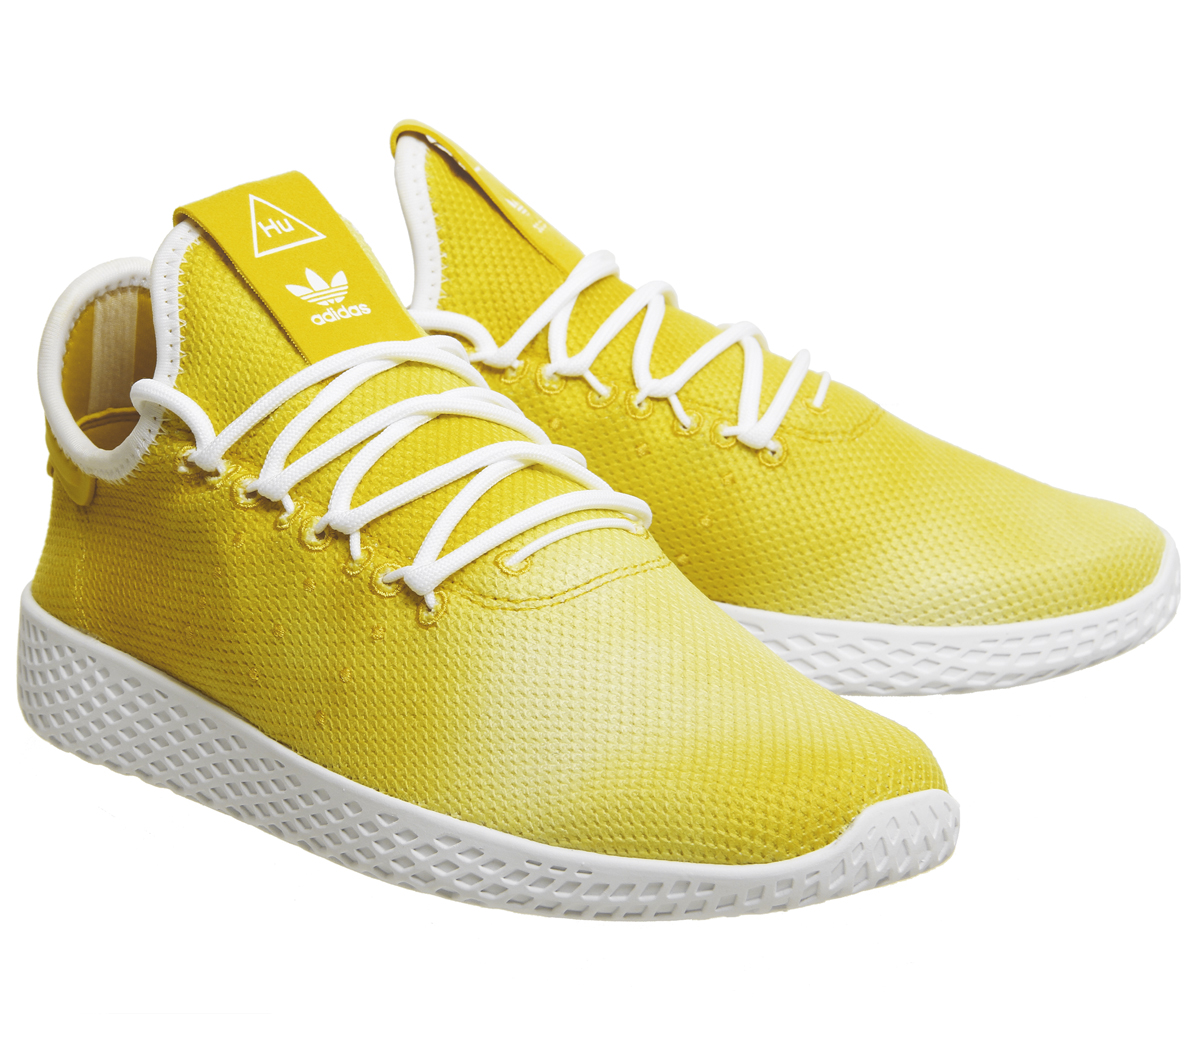 Mens Adidas Pw Tennis Trainers Footwear White Trainers Shoes  e8c58a139